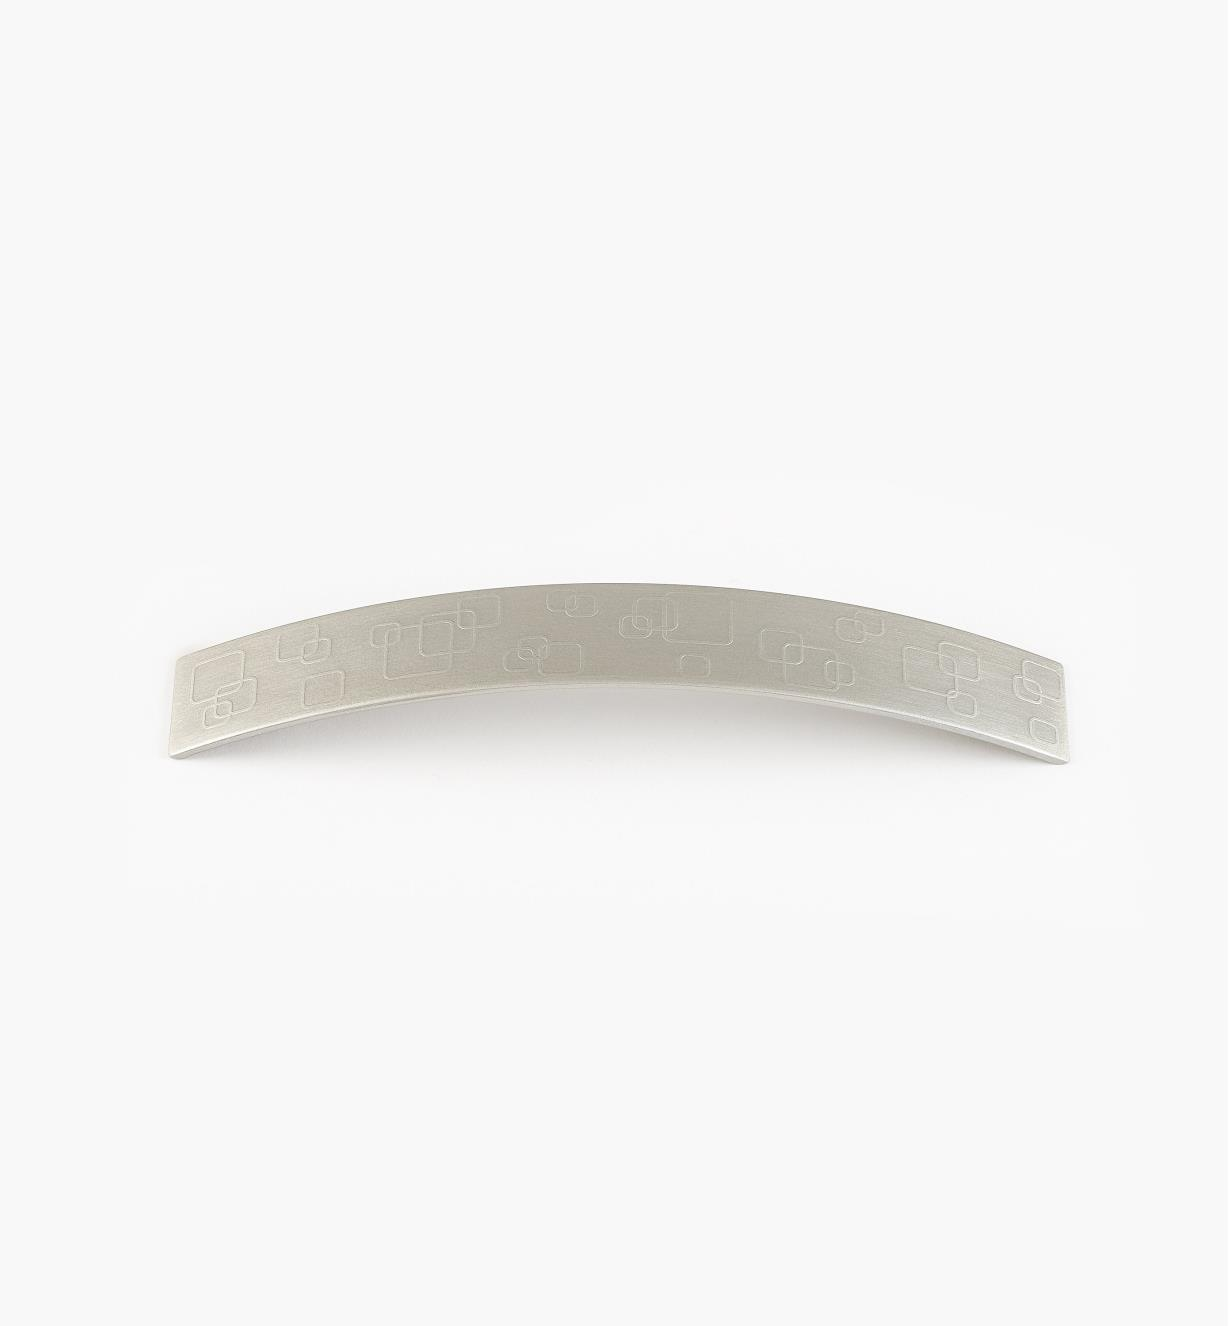 00A6935 - 160mm Brushed Nickel Topla Handle